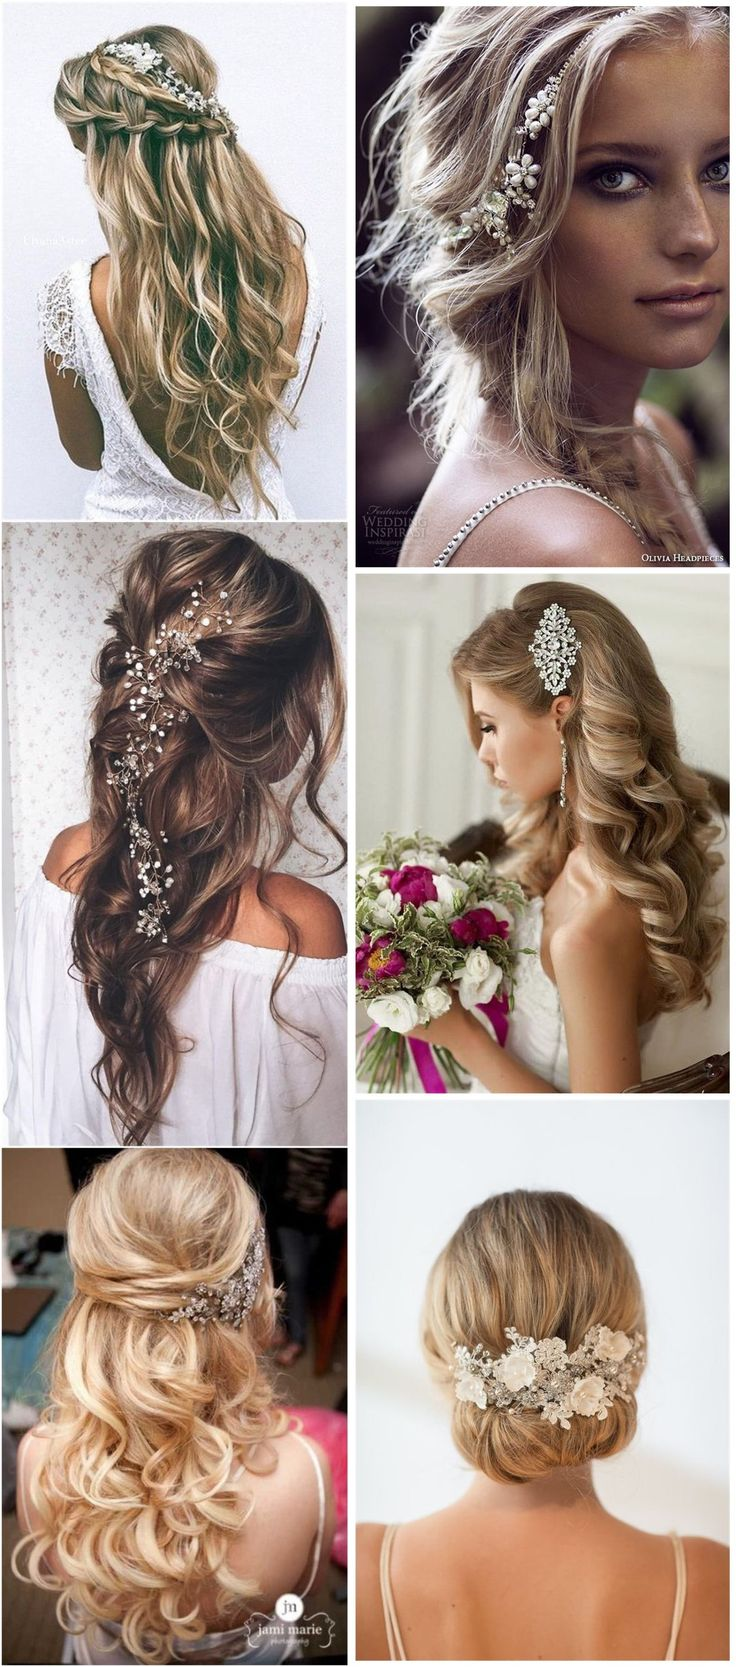 Bridal hair accessories for long hair - Hair Comes The Bride 20 Bridal Hair Accessories Get Style Advice For Any Budget